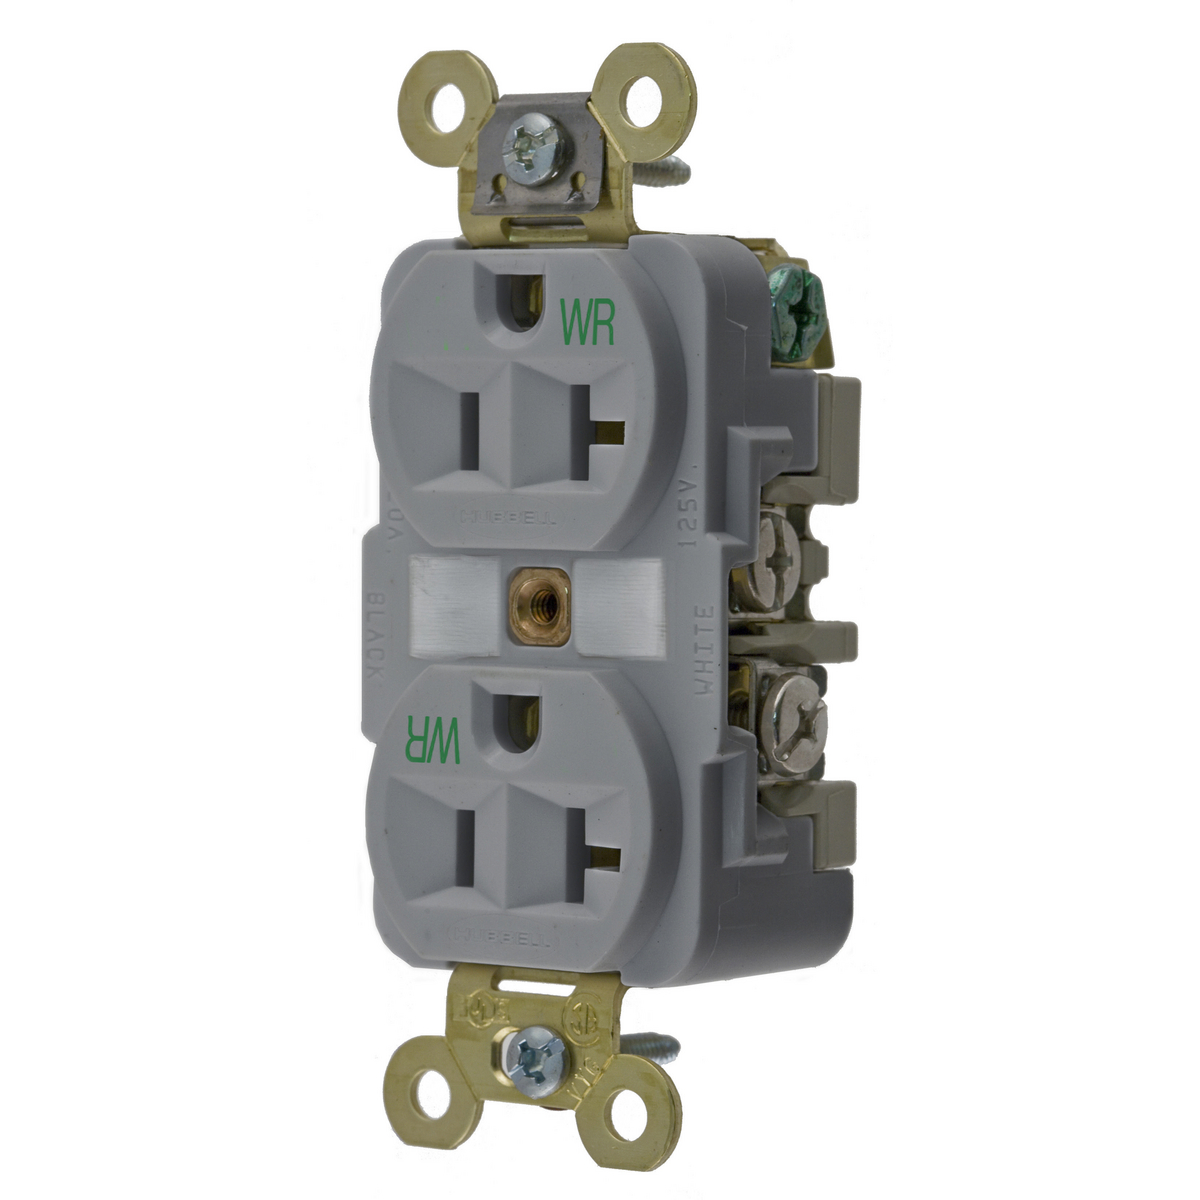 Awesome Hbl5362Gywr Industrial Receptacles Straight Blade Devices Wiring 101 Breceaxxcnl